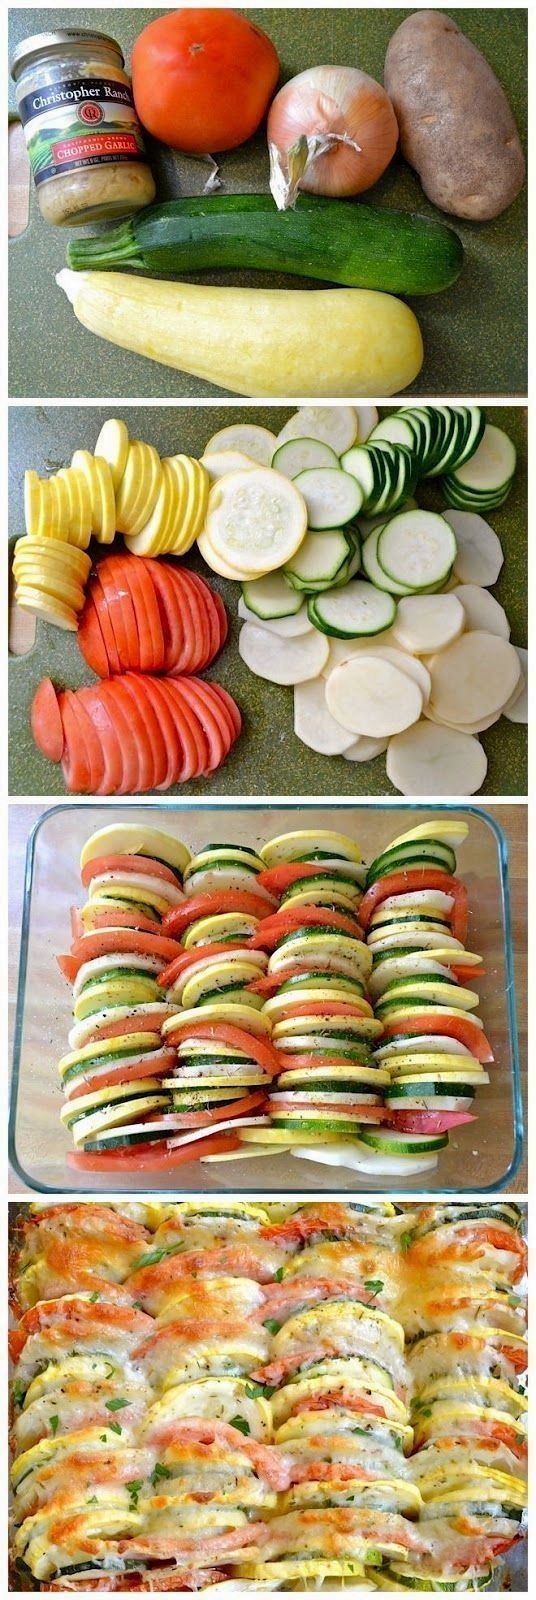 potatoes, onions, squash, zucchini, tomatoes...sliced, topped with seasoning and Parmesan cheese - I added in pepperoni slices. Delicious! Dad